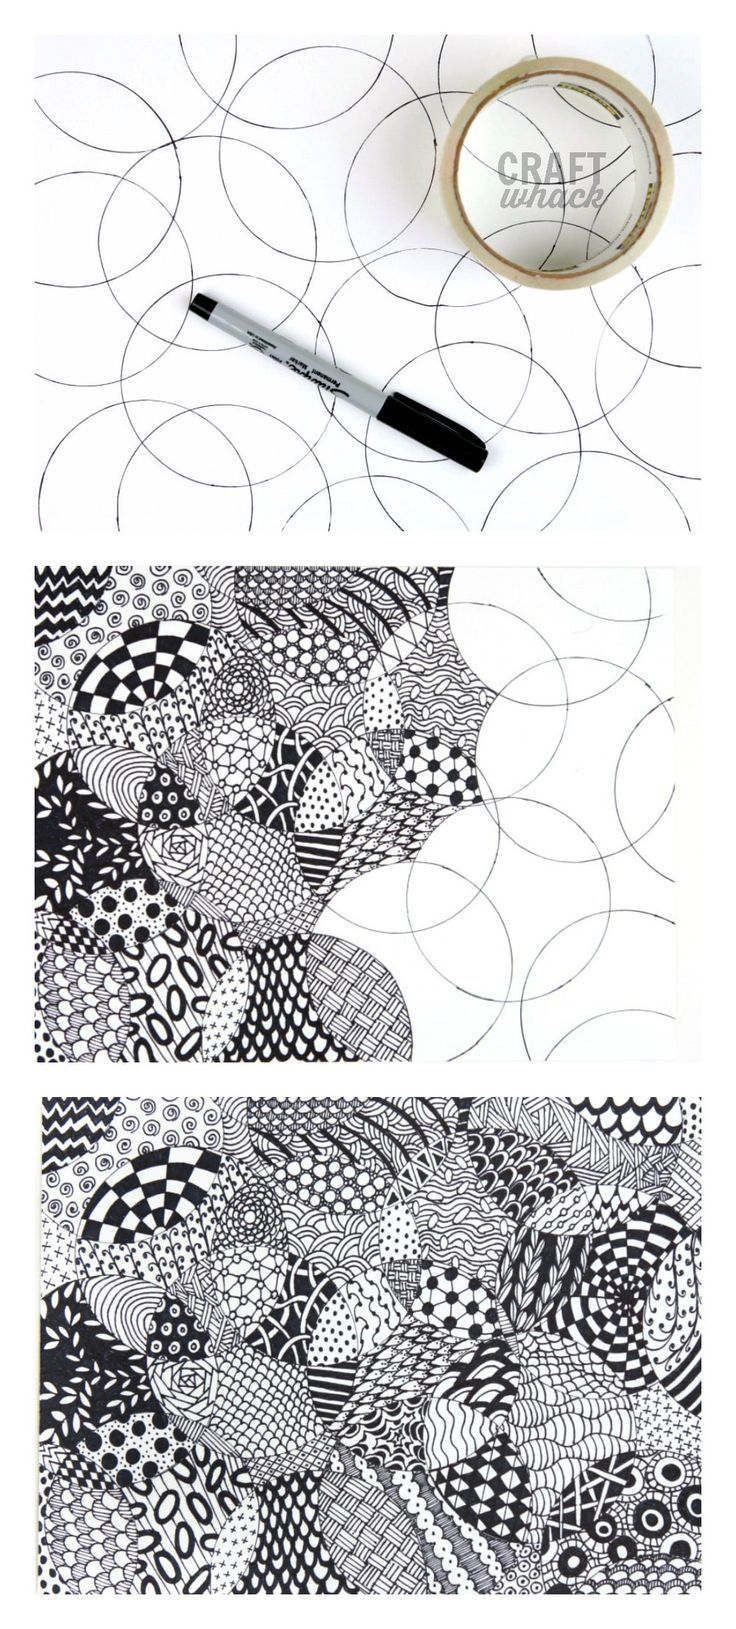 A very simple Zentangle drawing project – all you need is something round, paper